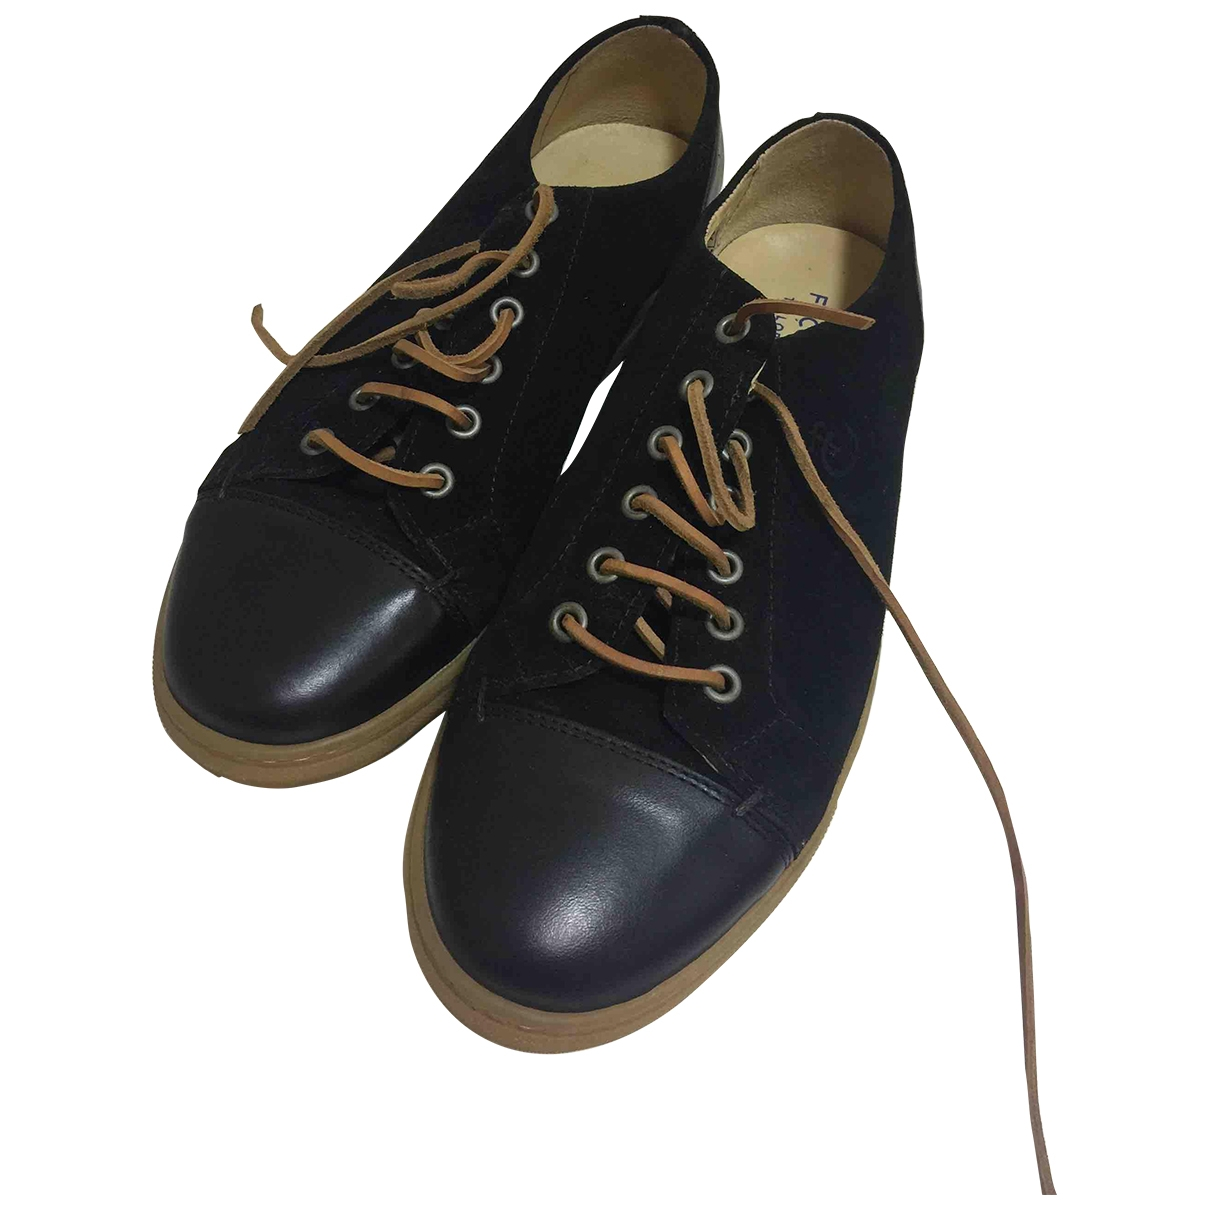 Faconnable \N Black Leather Lace ups for Men 42 EU